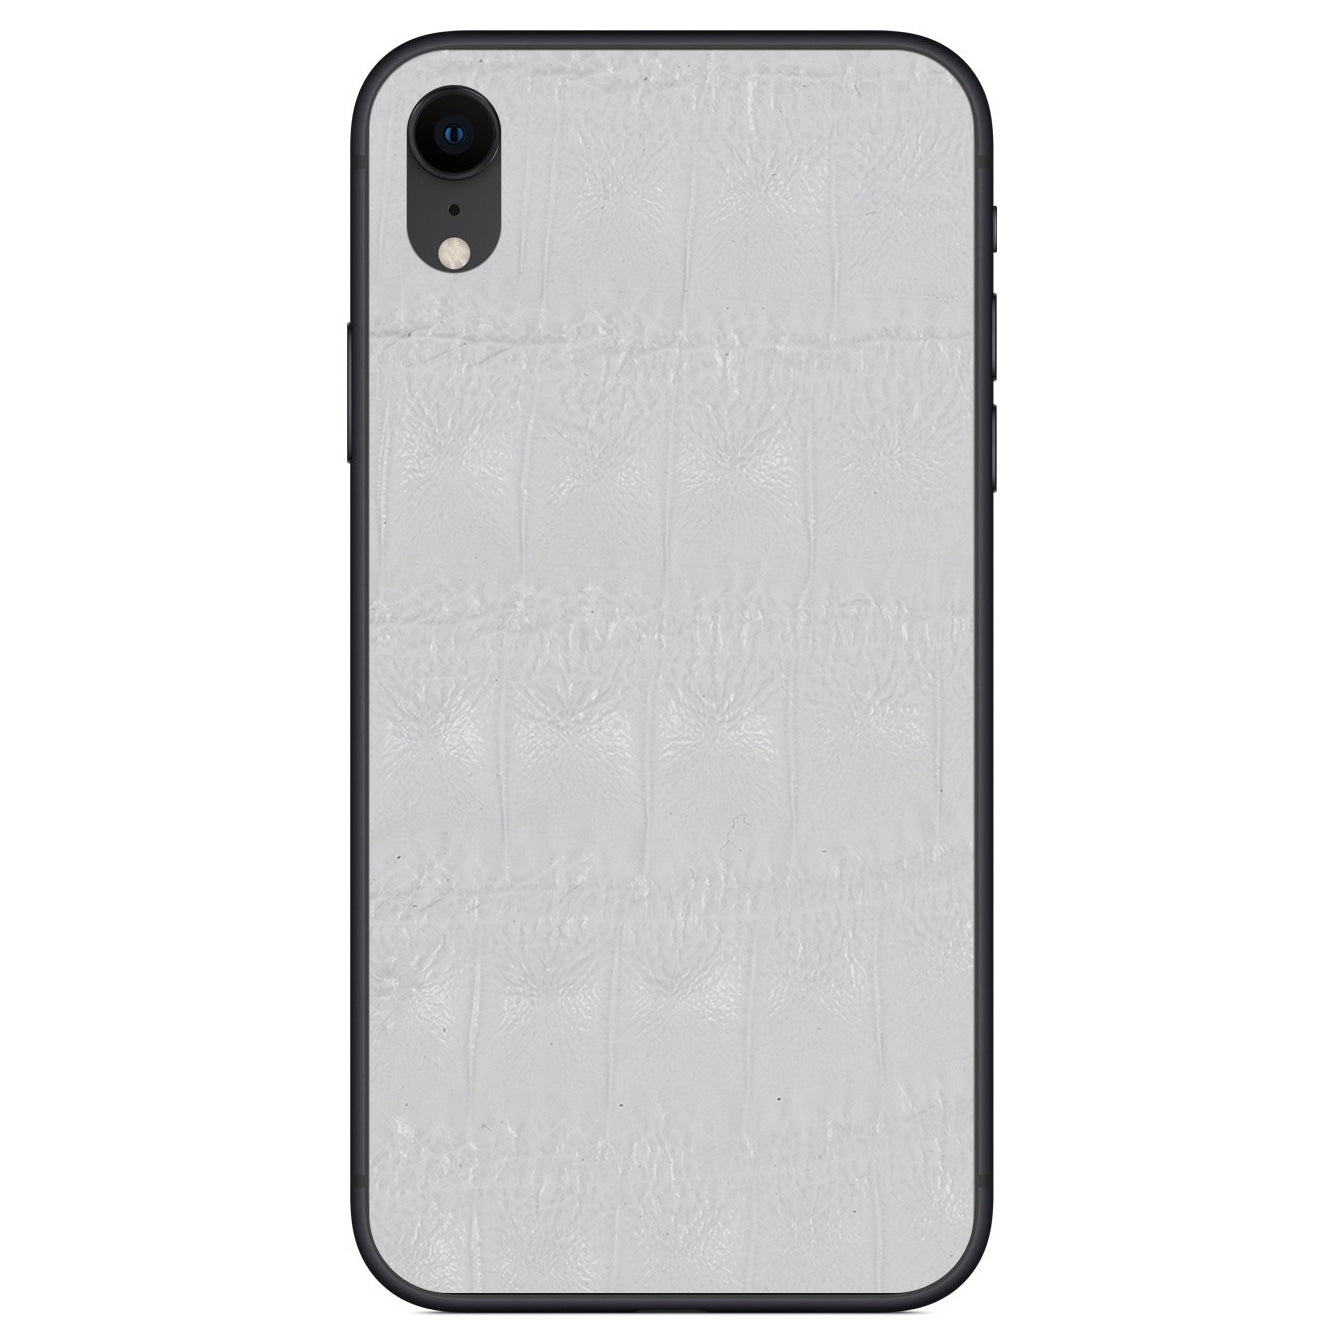 White Crocodile iPhone XR Leather Skin